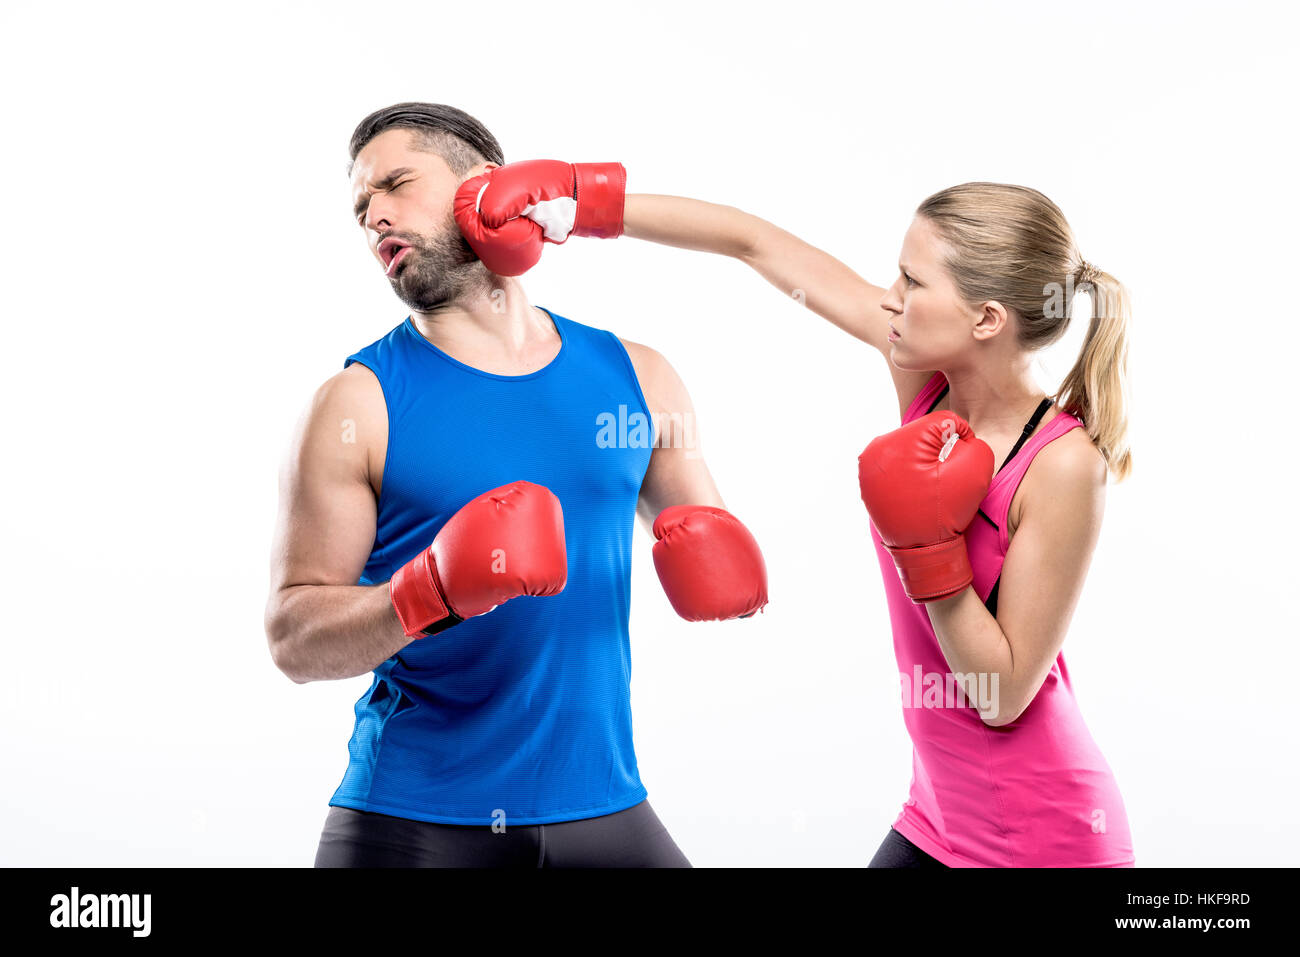 Man and woman boxing - Stock Image